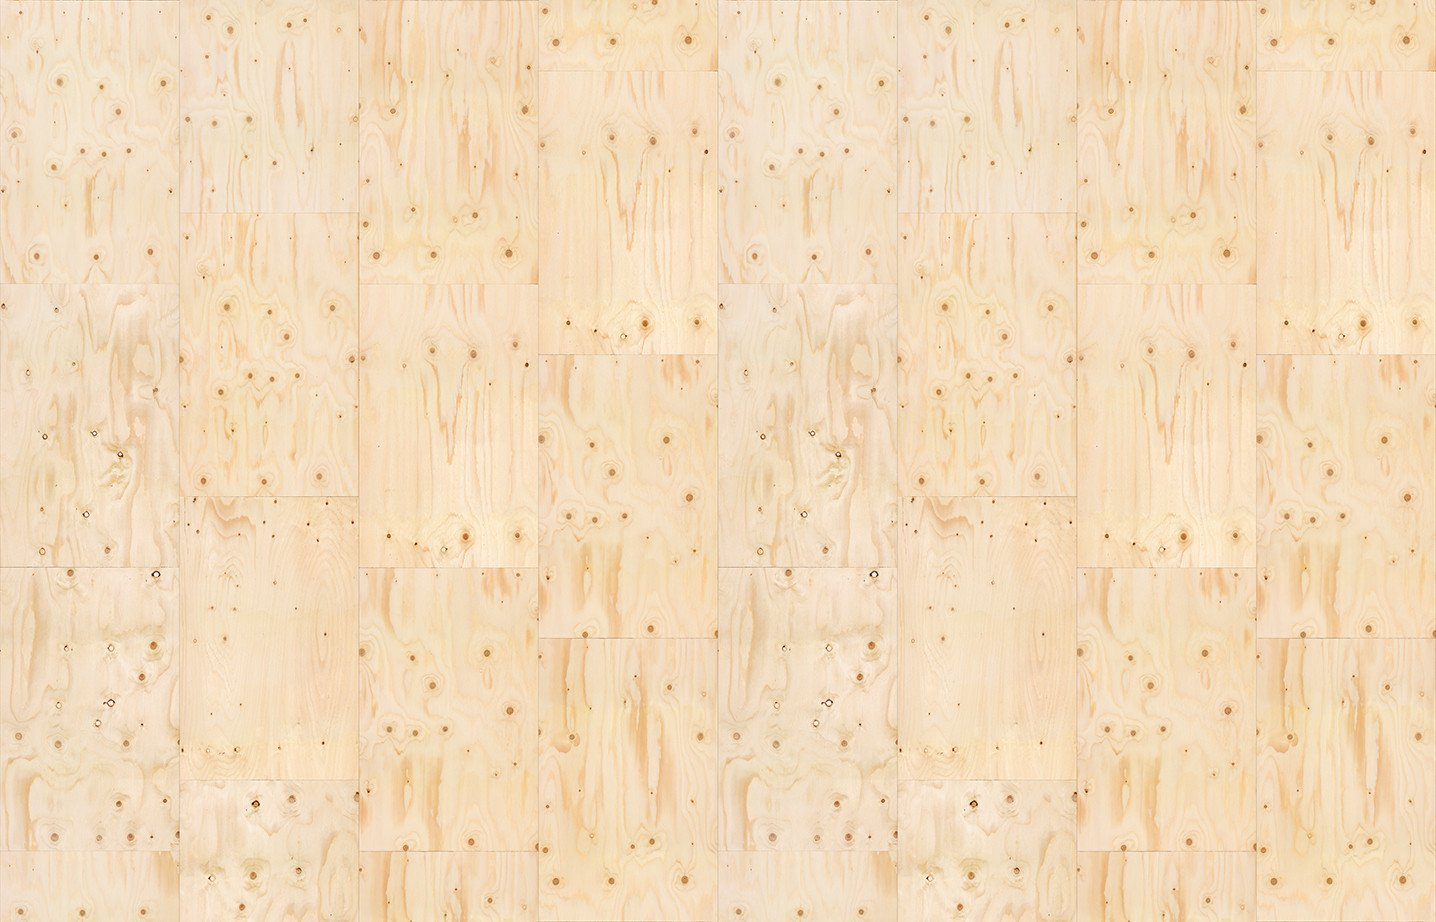 Sample Plywood Wallpaper design by Piet Hein Eek for NLXL Wallpaper ...